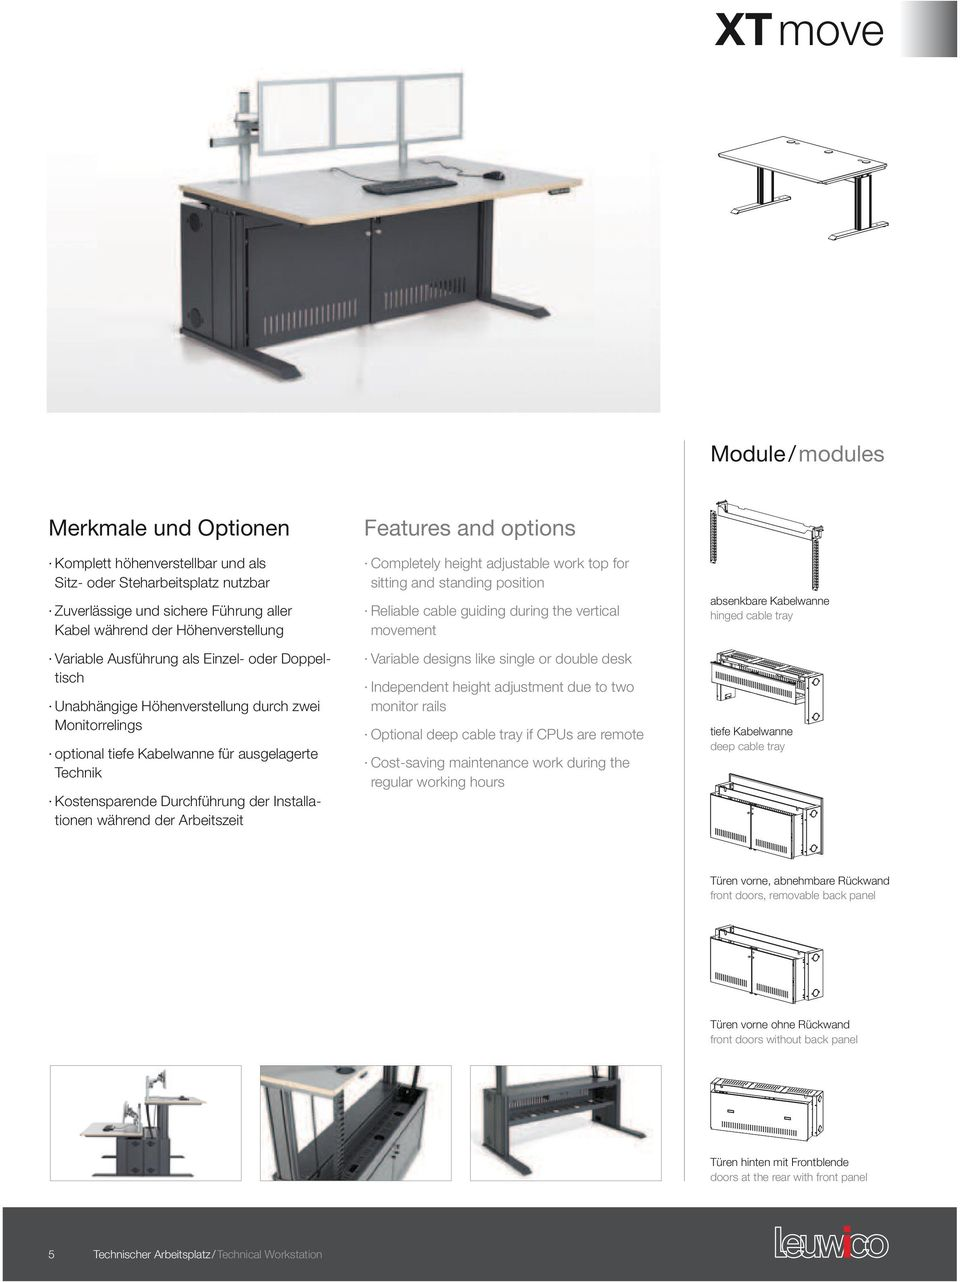 während der Arbeitszeit Features and options Completely height adjustable work top for sitting and standing position Reliable cable guiding during the vertical movement Variable designs like single